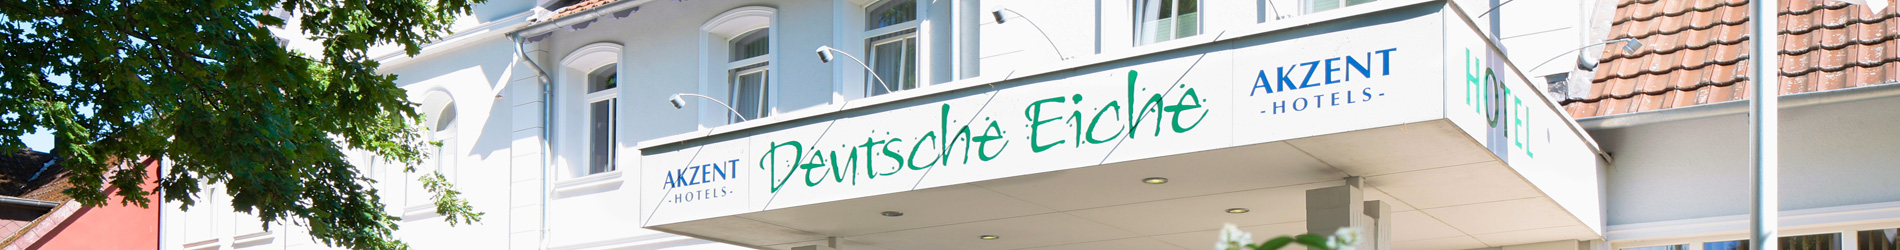 Welcome to Deutsche Eiche Hotel in Uelzen, on the Lüneburg Heath Germany